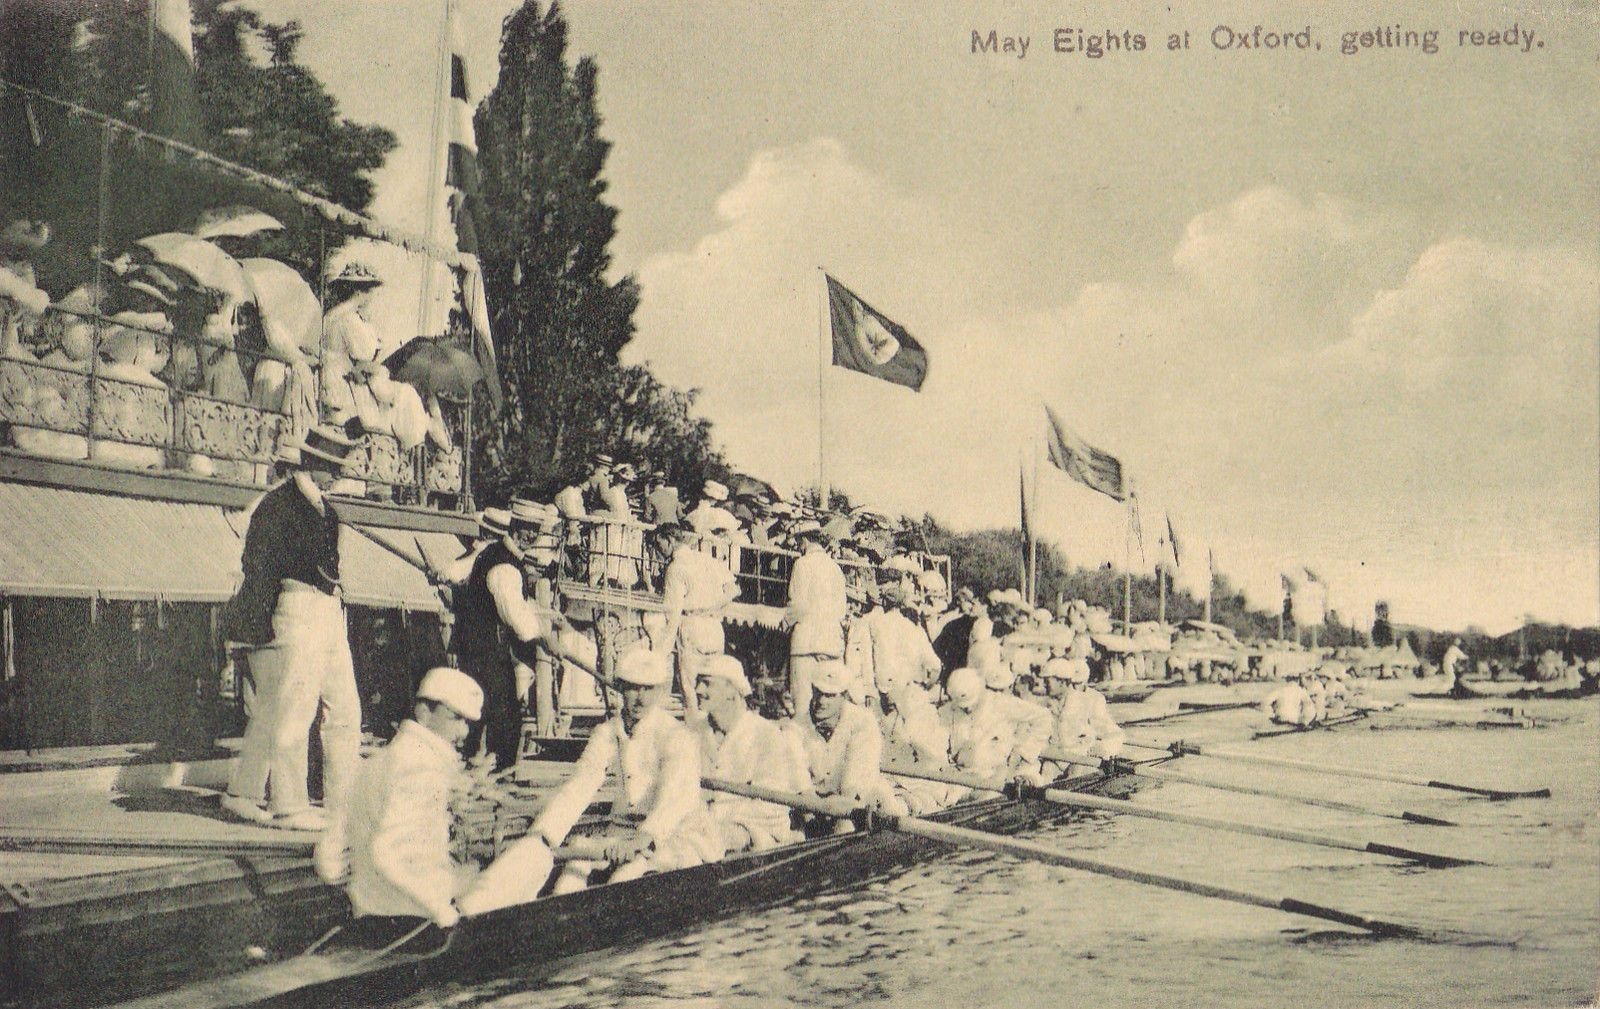 Oxfordshire postcard MAY EIGHTS AT OXFORD, GETTING READY 1922 by Emberlin & Son | eBay